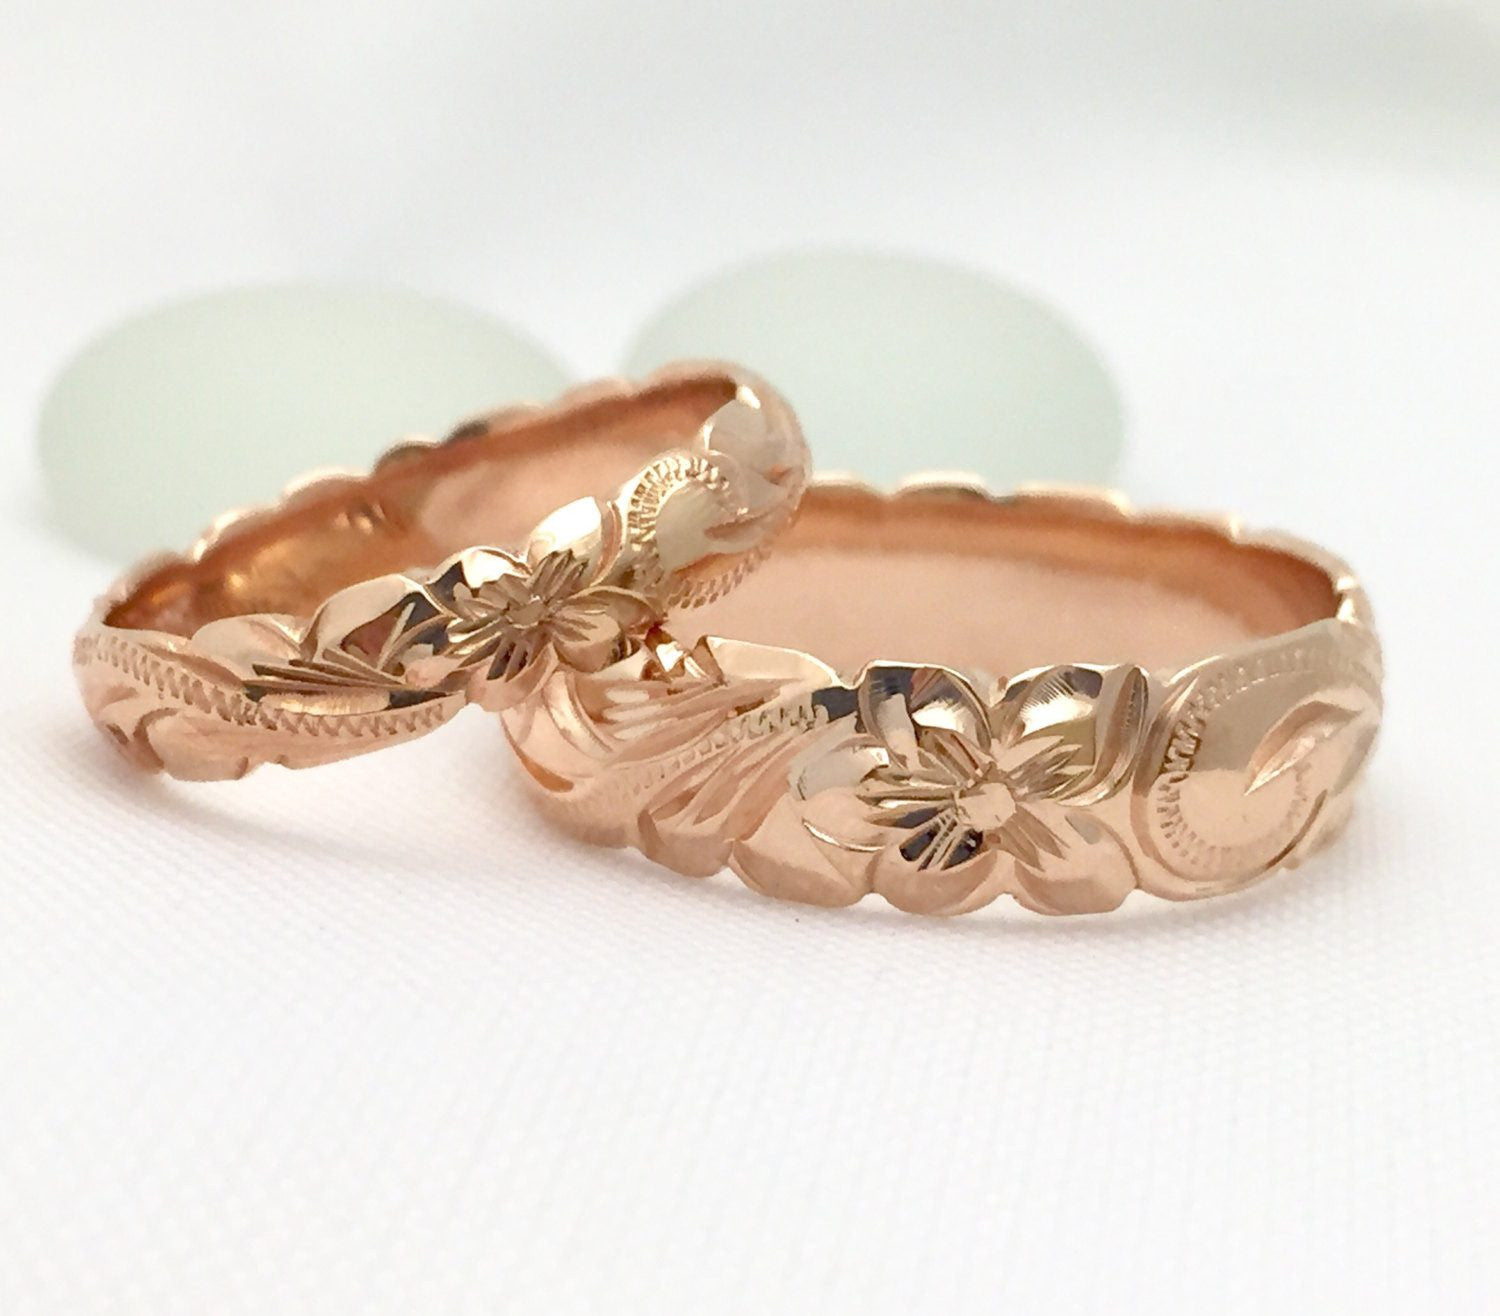 Gold wedding Ring Set of Traditional Hawaiian Hand Engraved 14k Pink Gold Barrel Rings (4mm & 6mm width) - Aolani Hawaii - 1